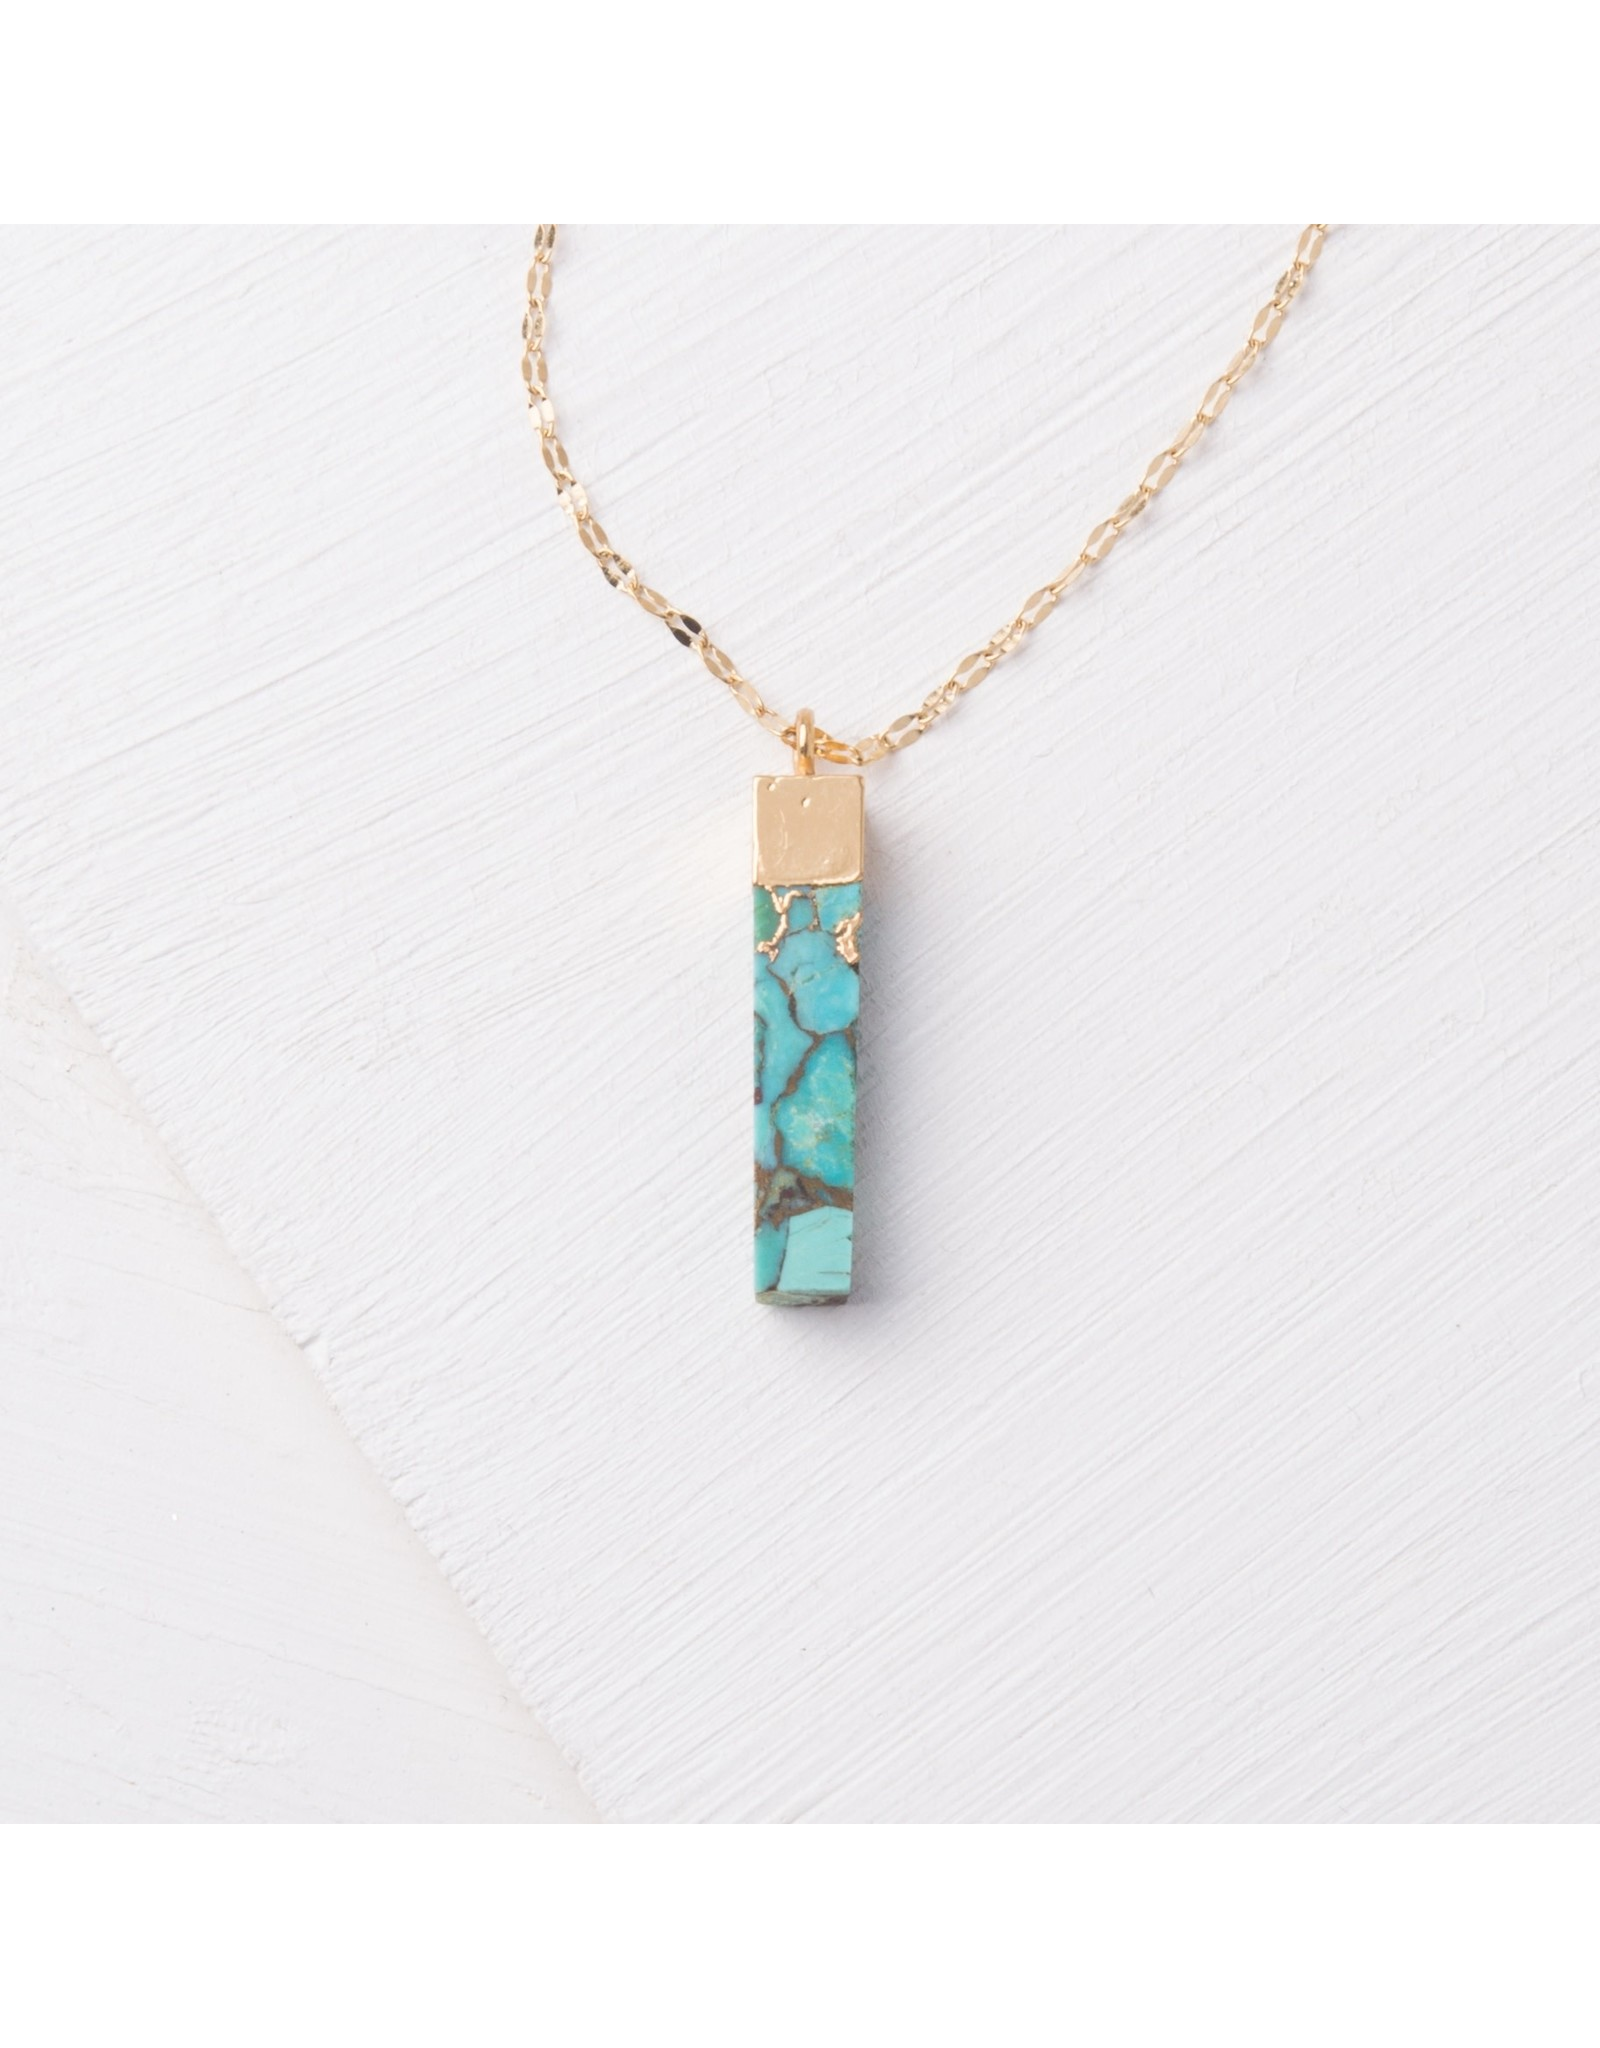 Starfish Project Brayden Turquoise Pendant Necklace, China